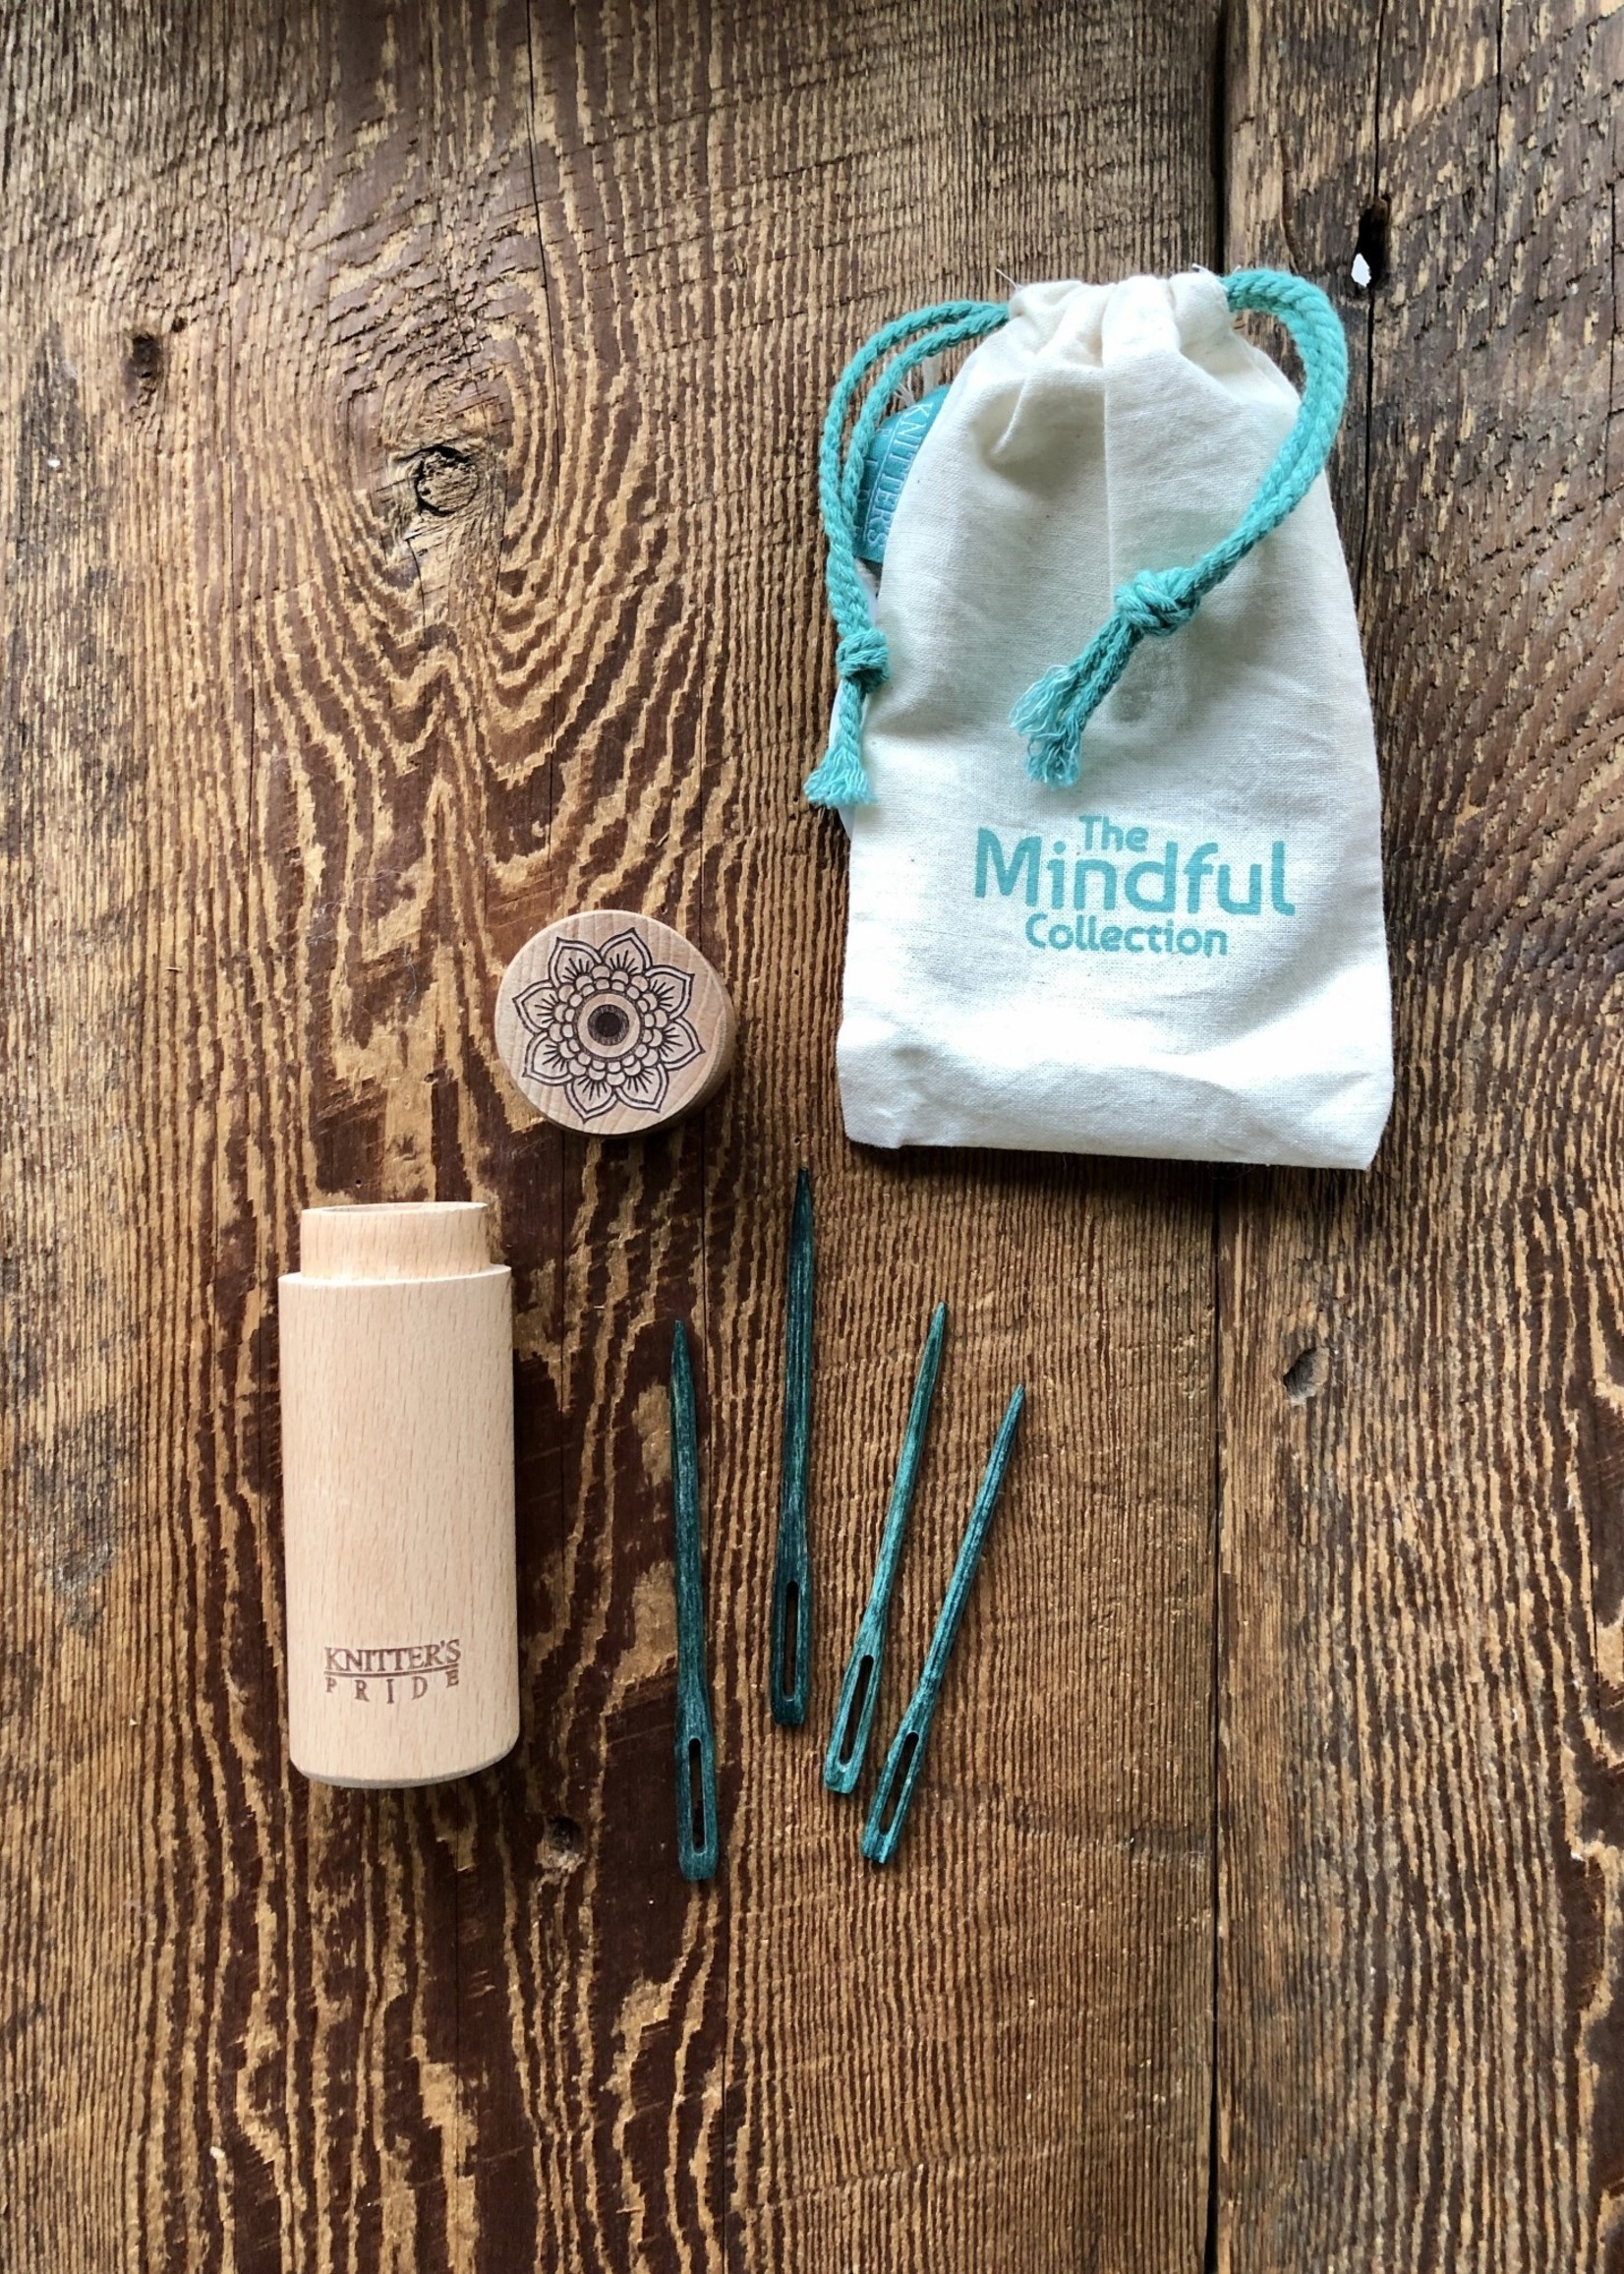 Knitter's Pride Mindful Collection